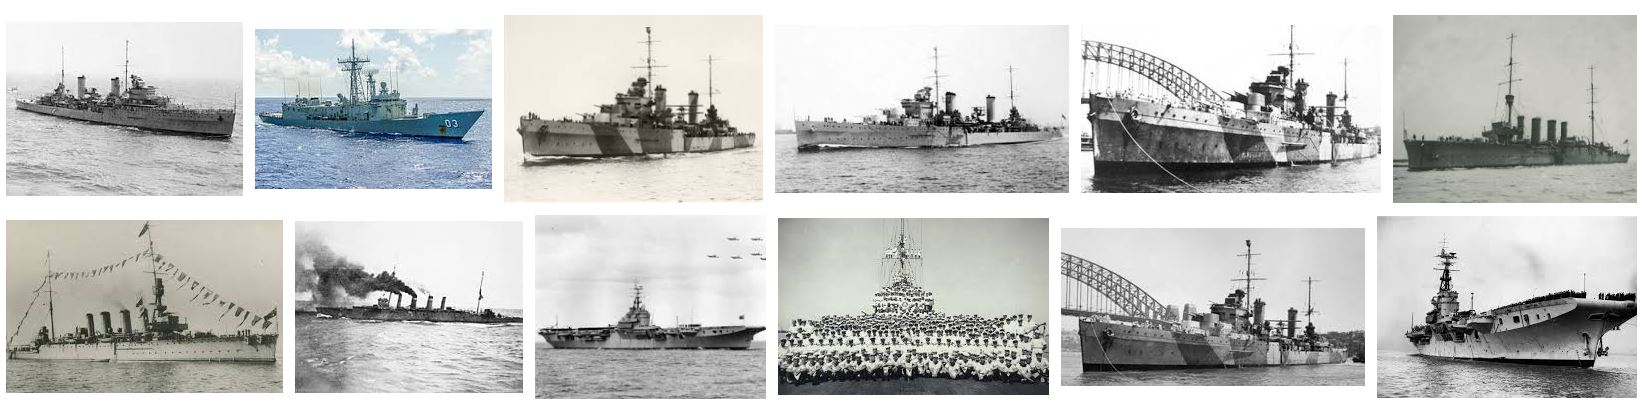 Information on HMAS Sydney